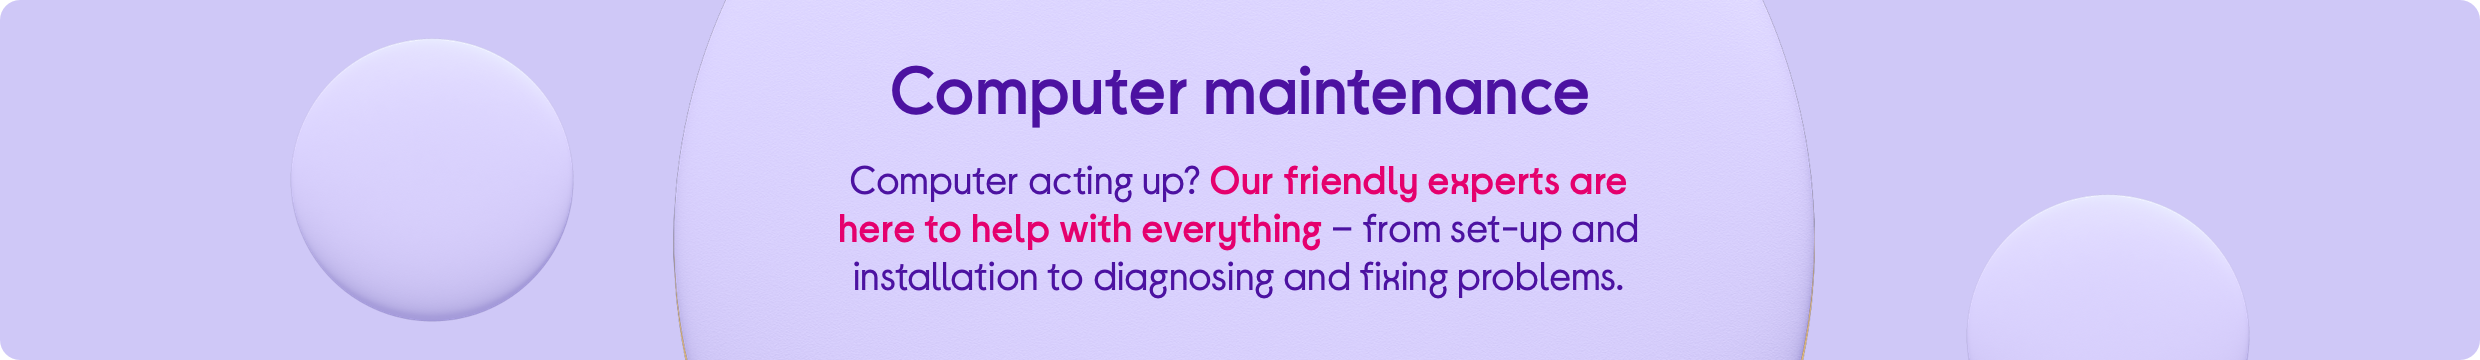 Computer acting up? Our friendly experts are here to help with everything – from set-up and installation to diagnosing and fixing problems.